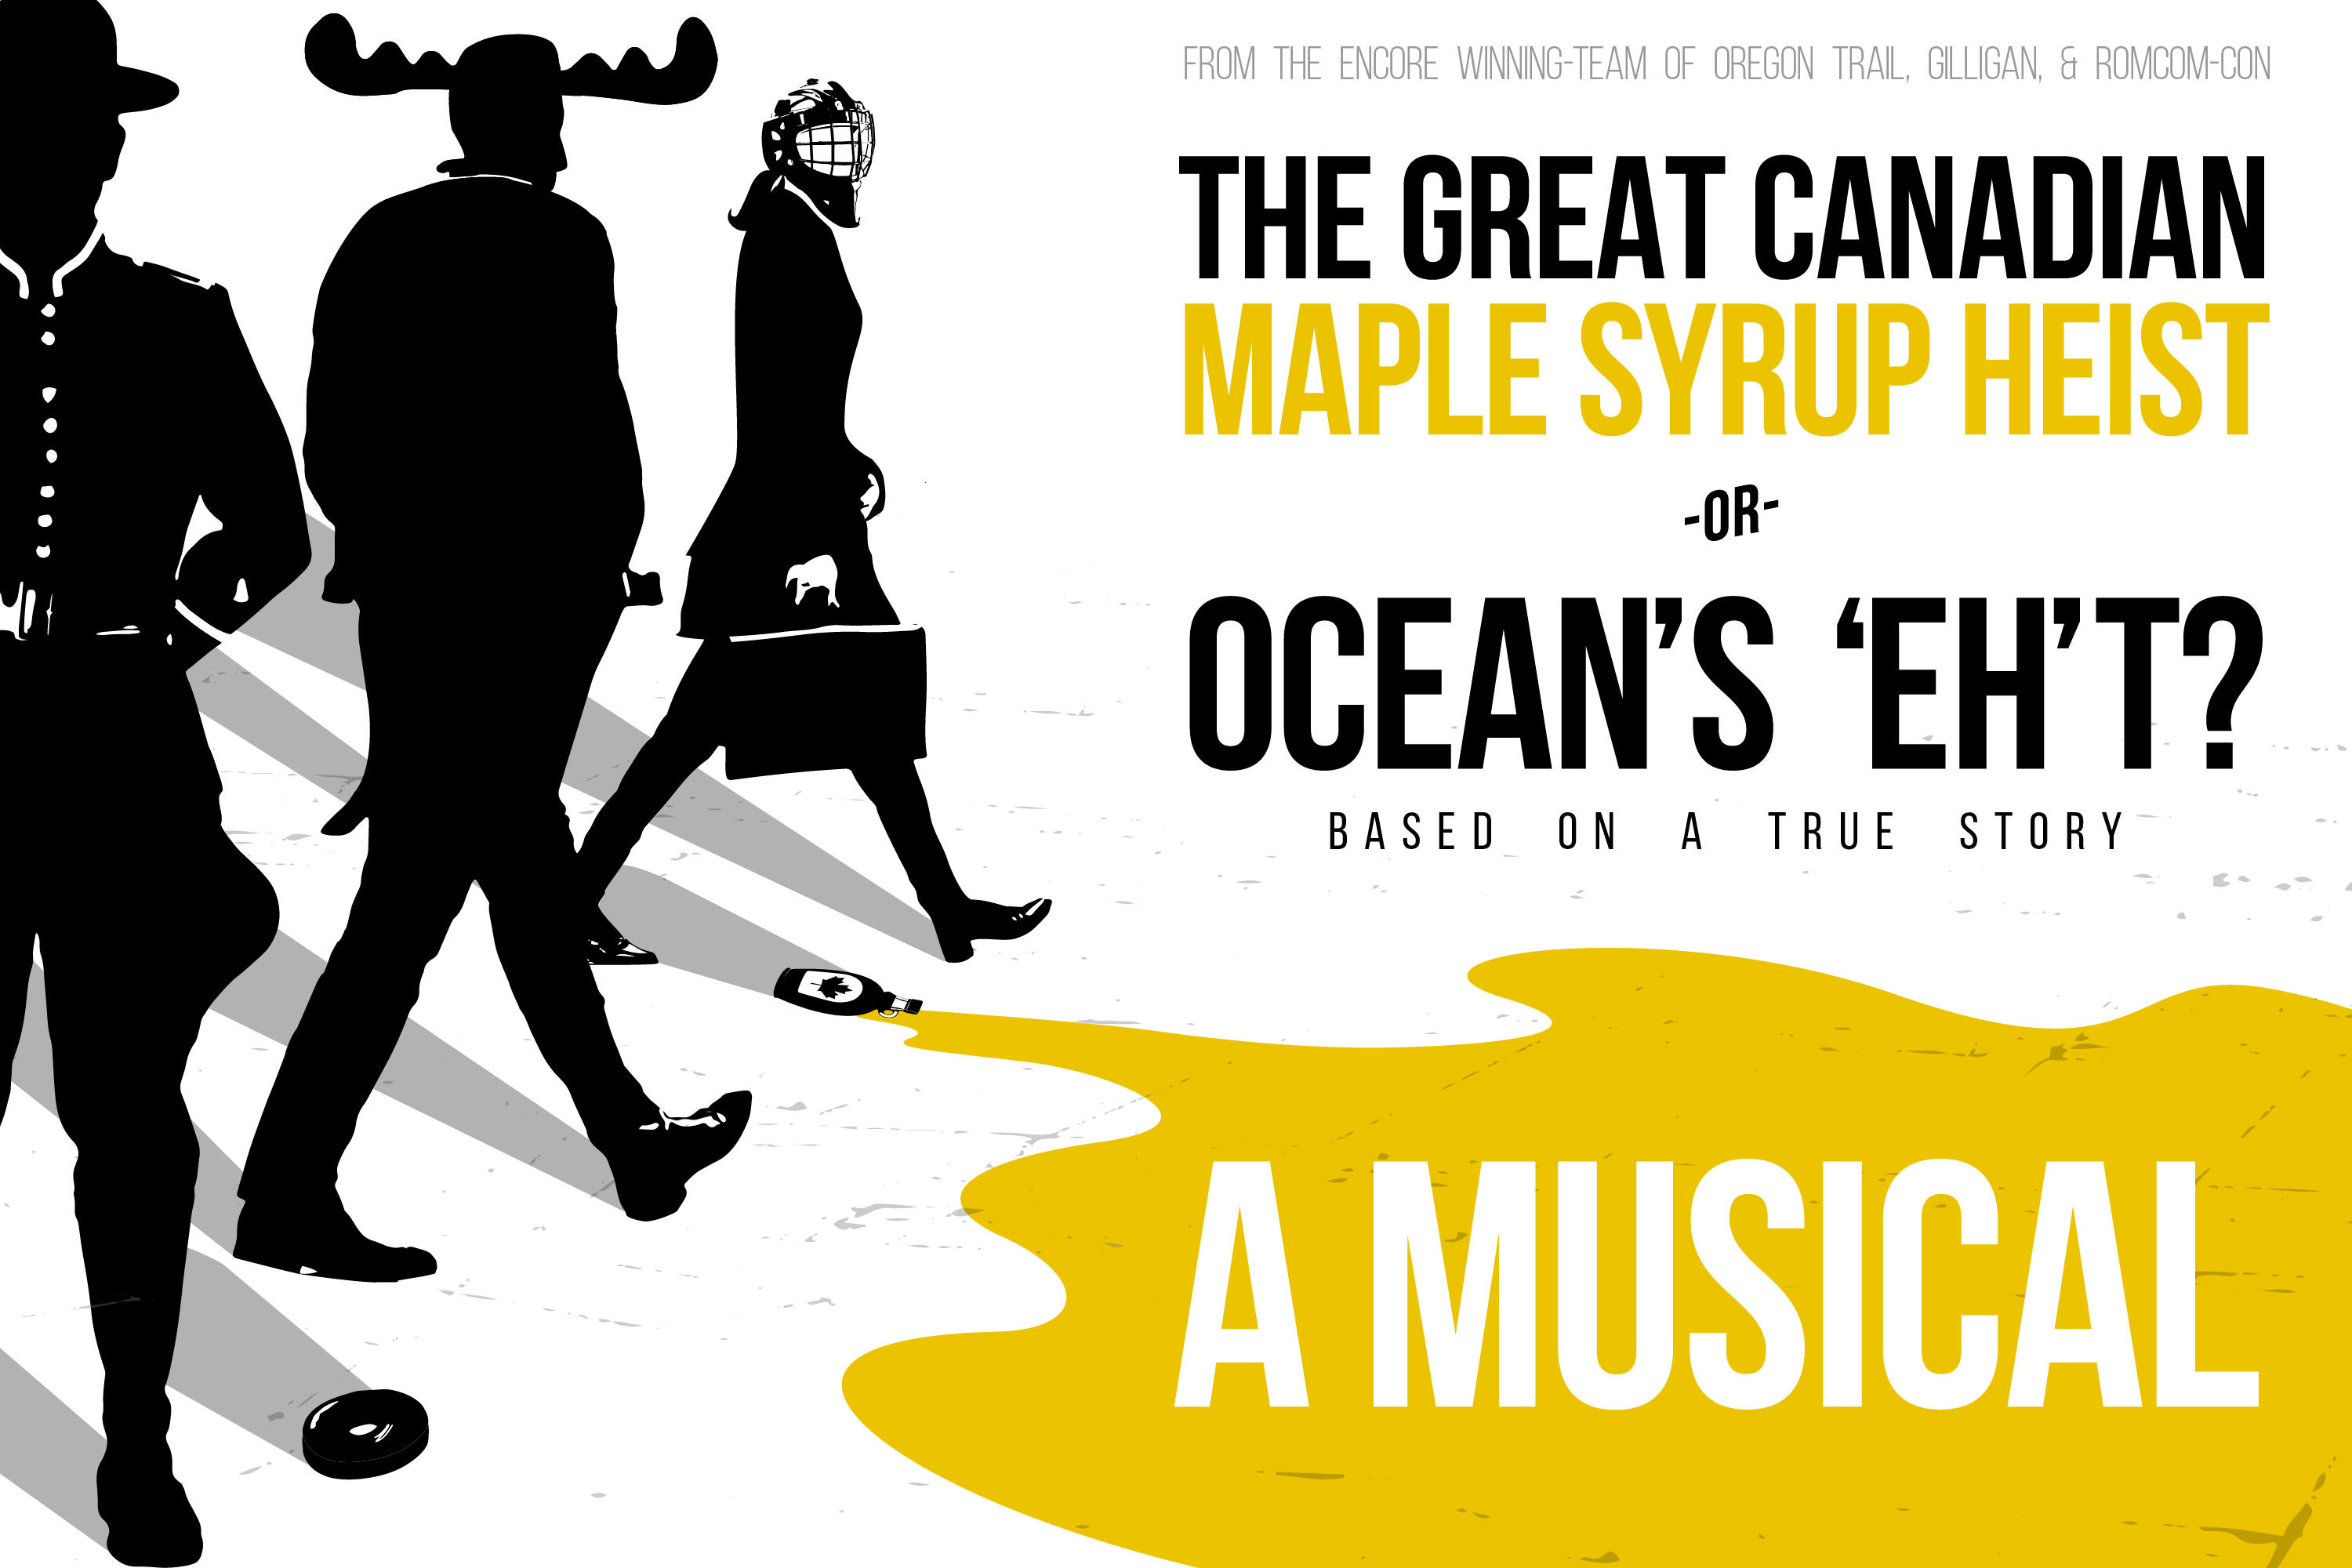 201808102030-540|0810|2030|5287266|The Great Canadian Maple Syrup Heist or, Ocean's 'Eh'T?: A Musical|5367603